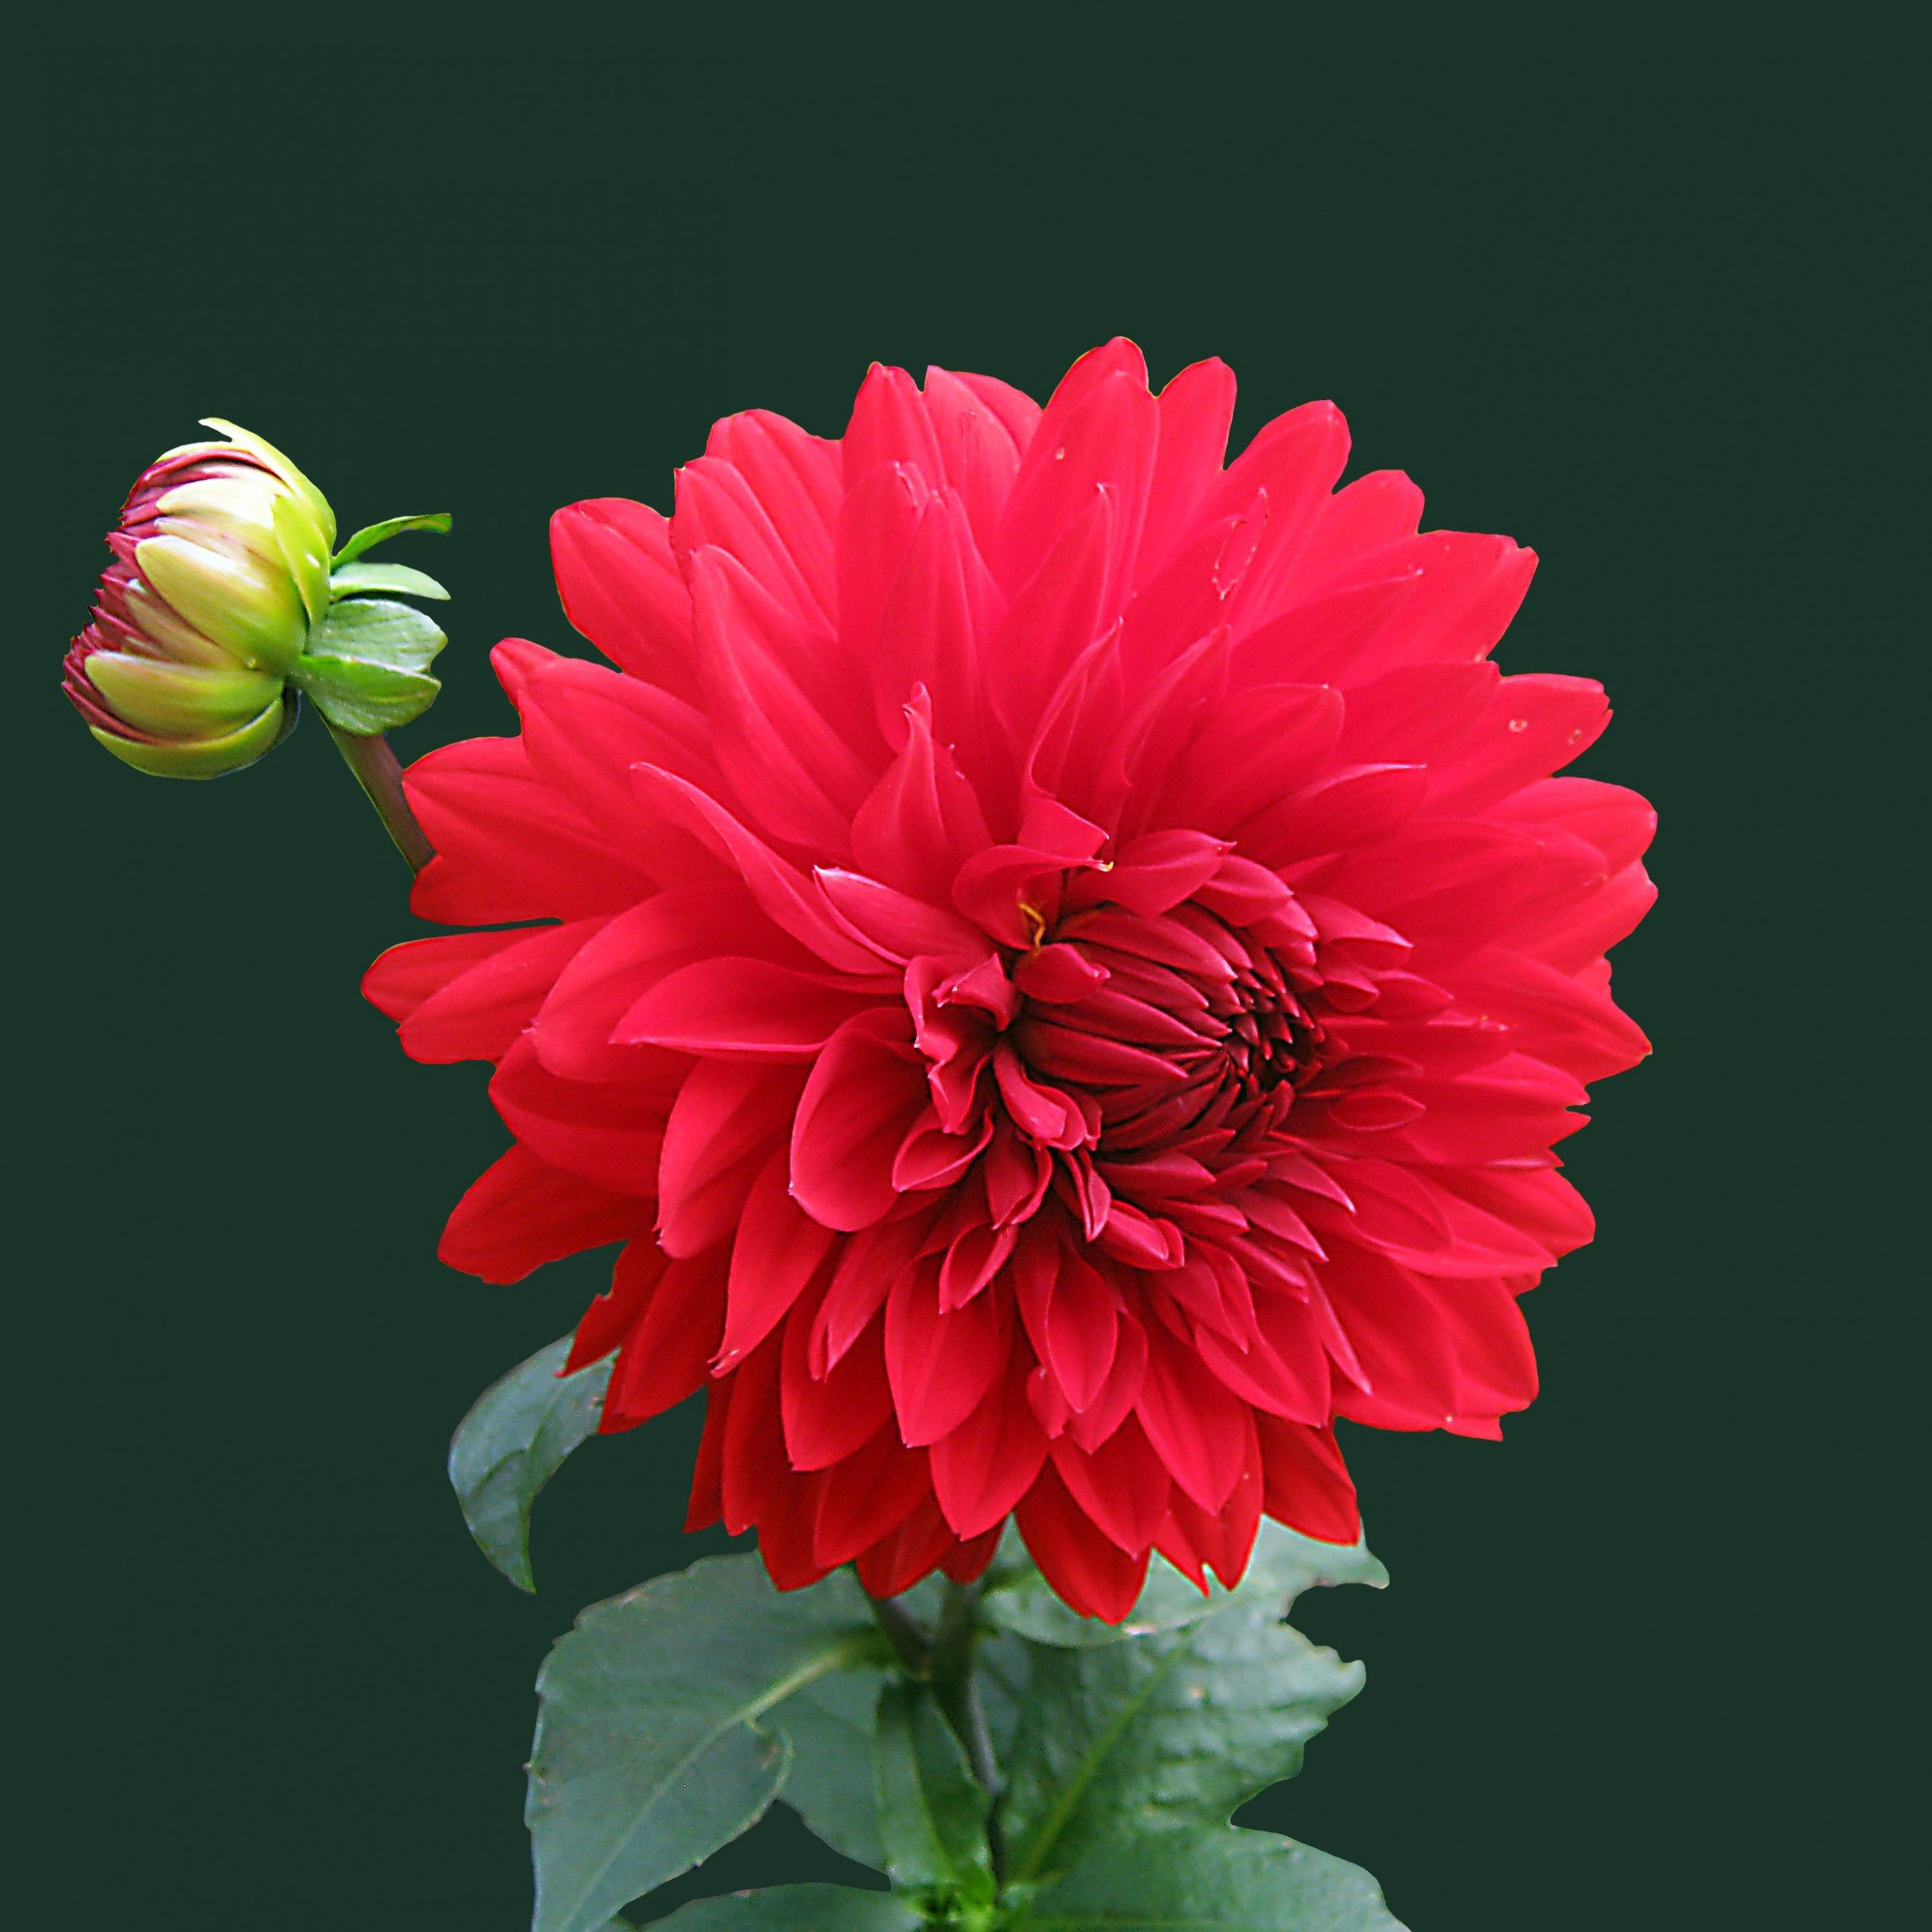 Dahlia red blossom tap to see more beautiful flowers wallpapers dahlia red blossom tap to see more beautiful flowers wallpapers mobile9 izmirmasajfo Images